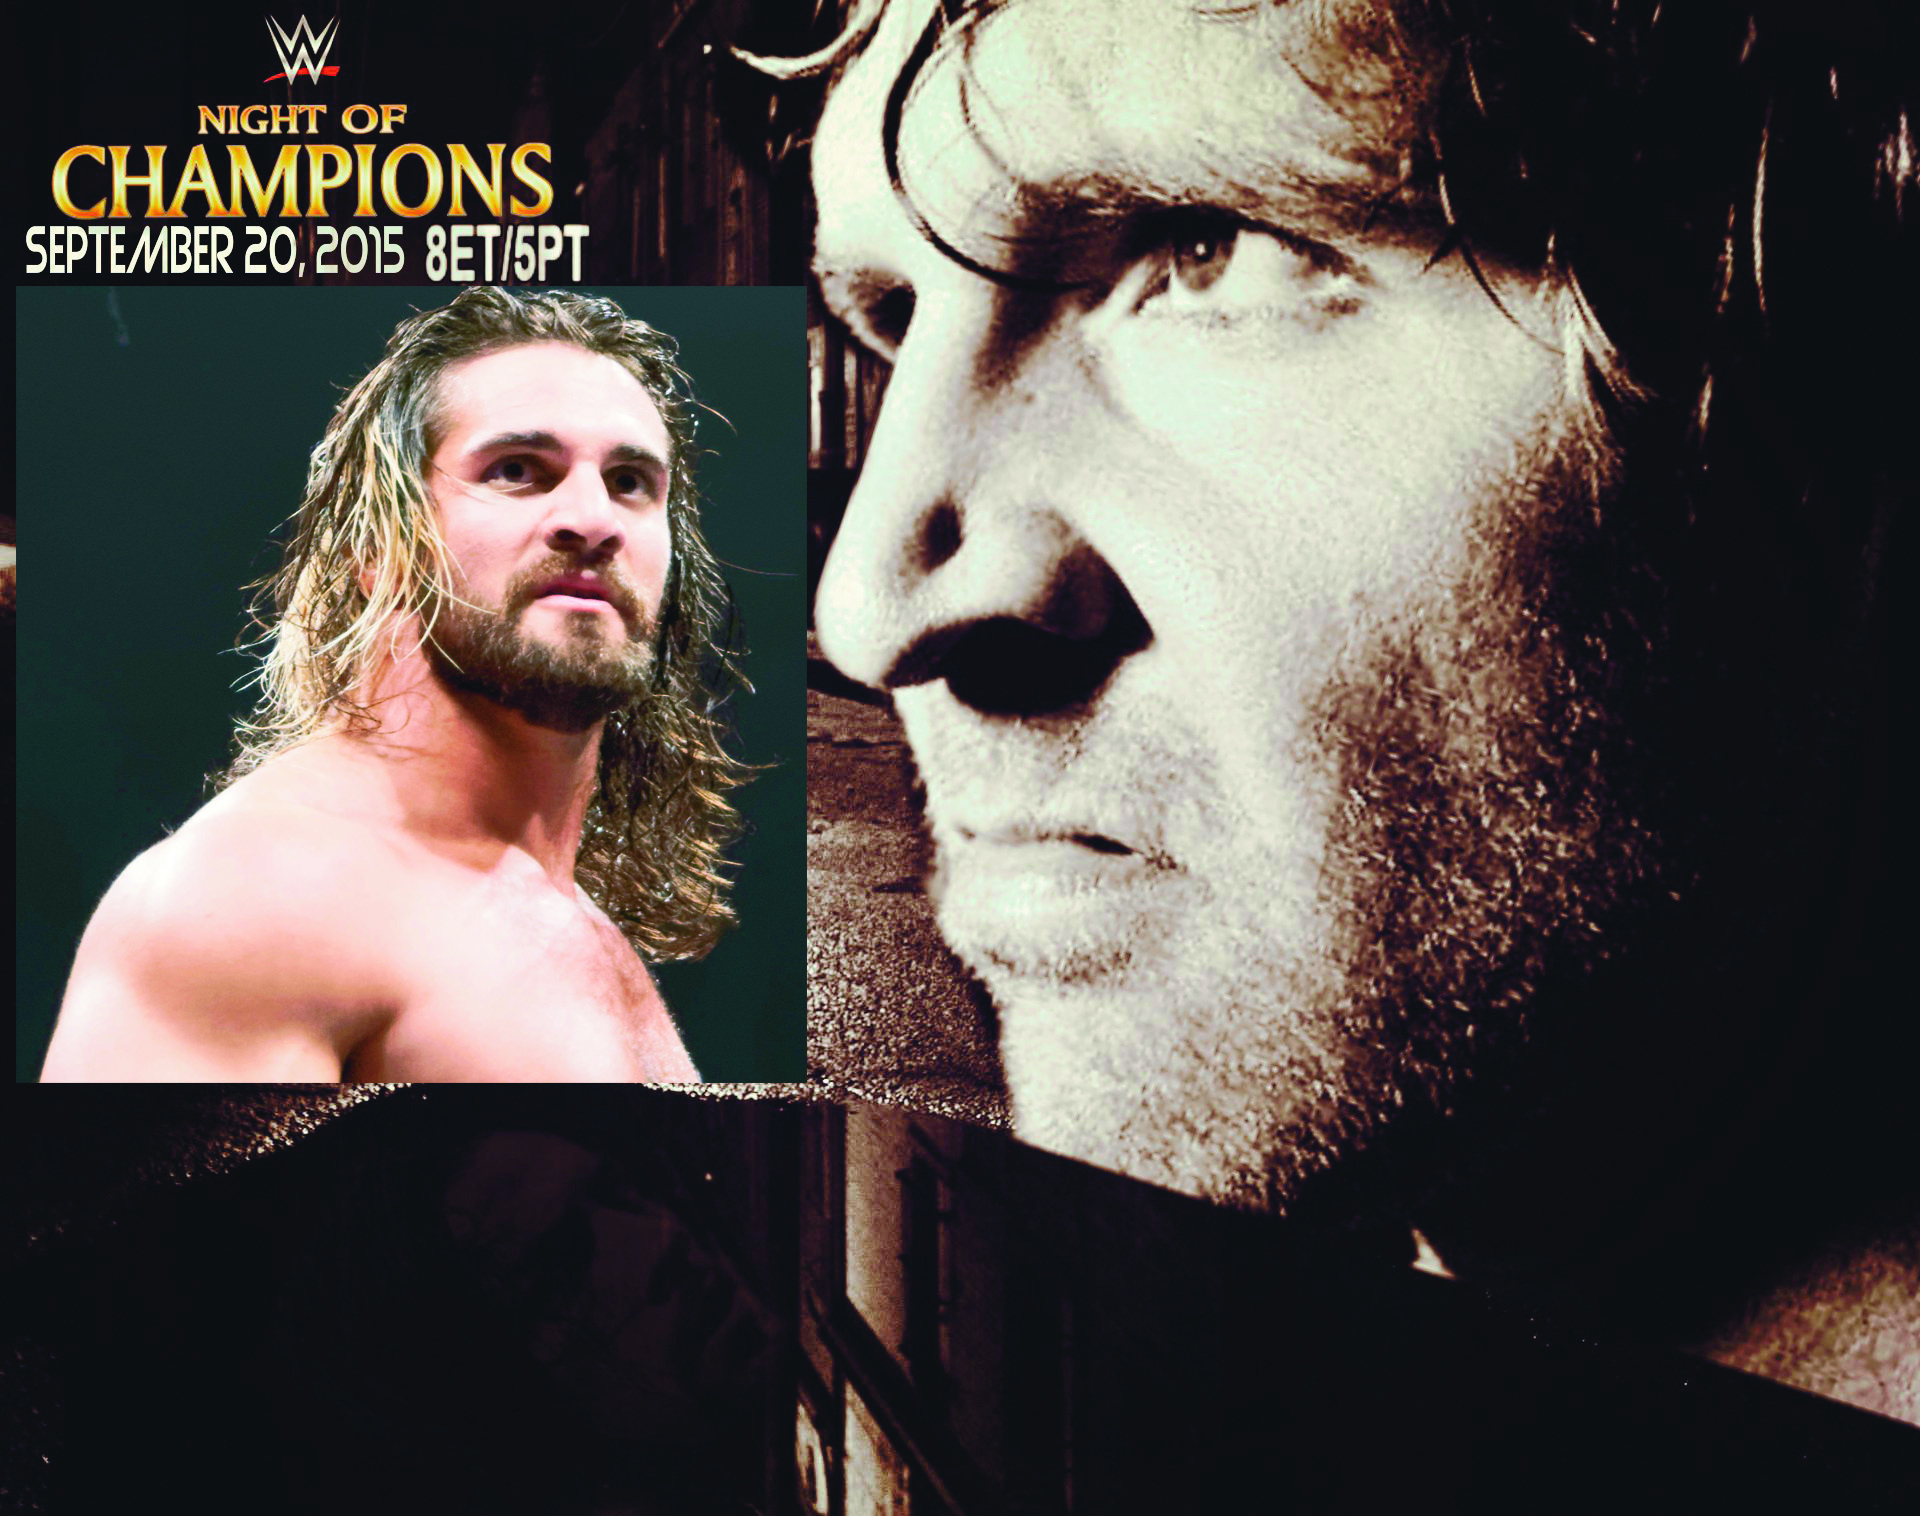 Dean Ambrose stares menacingly over inset Seth Rollins. (credit: Background: WBLZBlazin108, Inset: Miguel Discart)